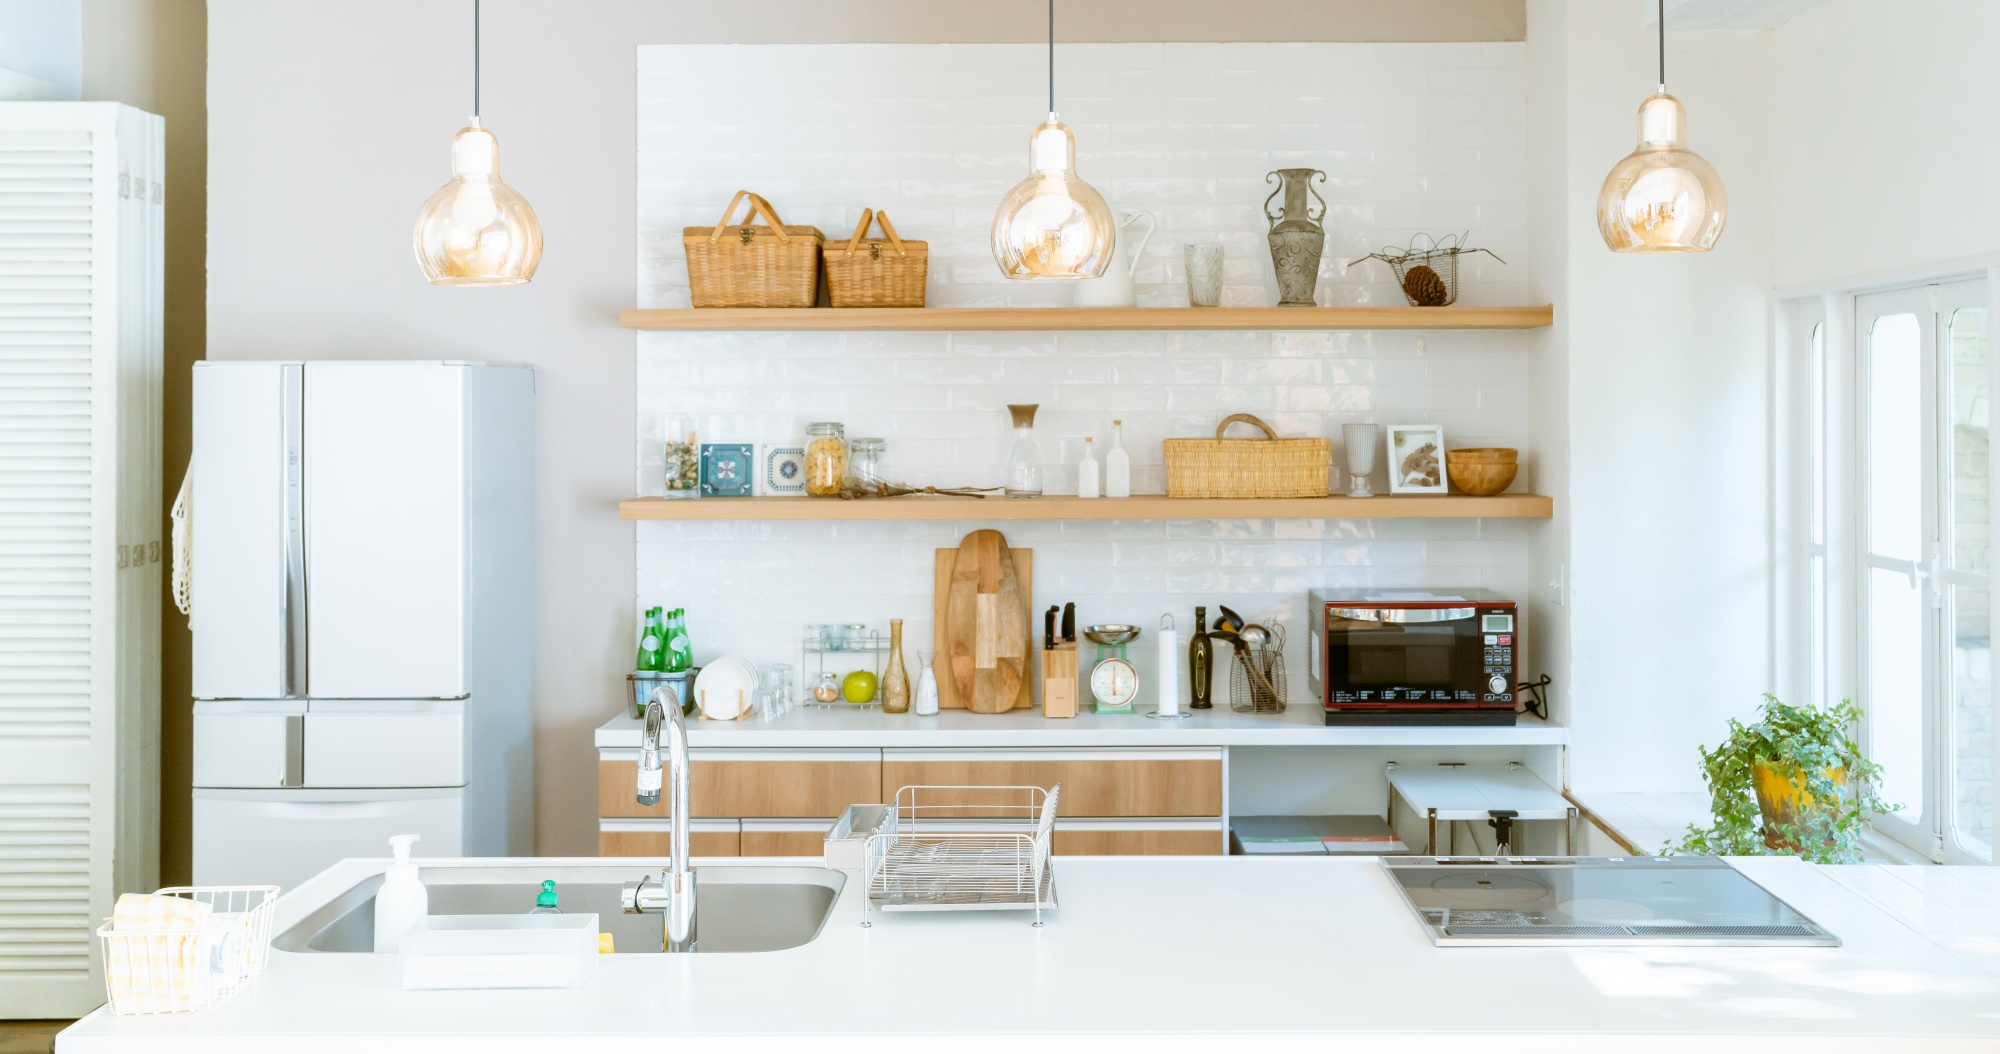 How To Style Pinterest-Worthy Floating Kitchen Shelves row of 3 shelves in kitchen with baskets, canisters, vase